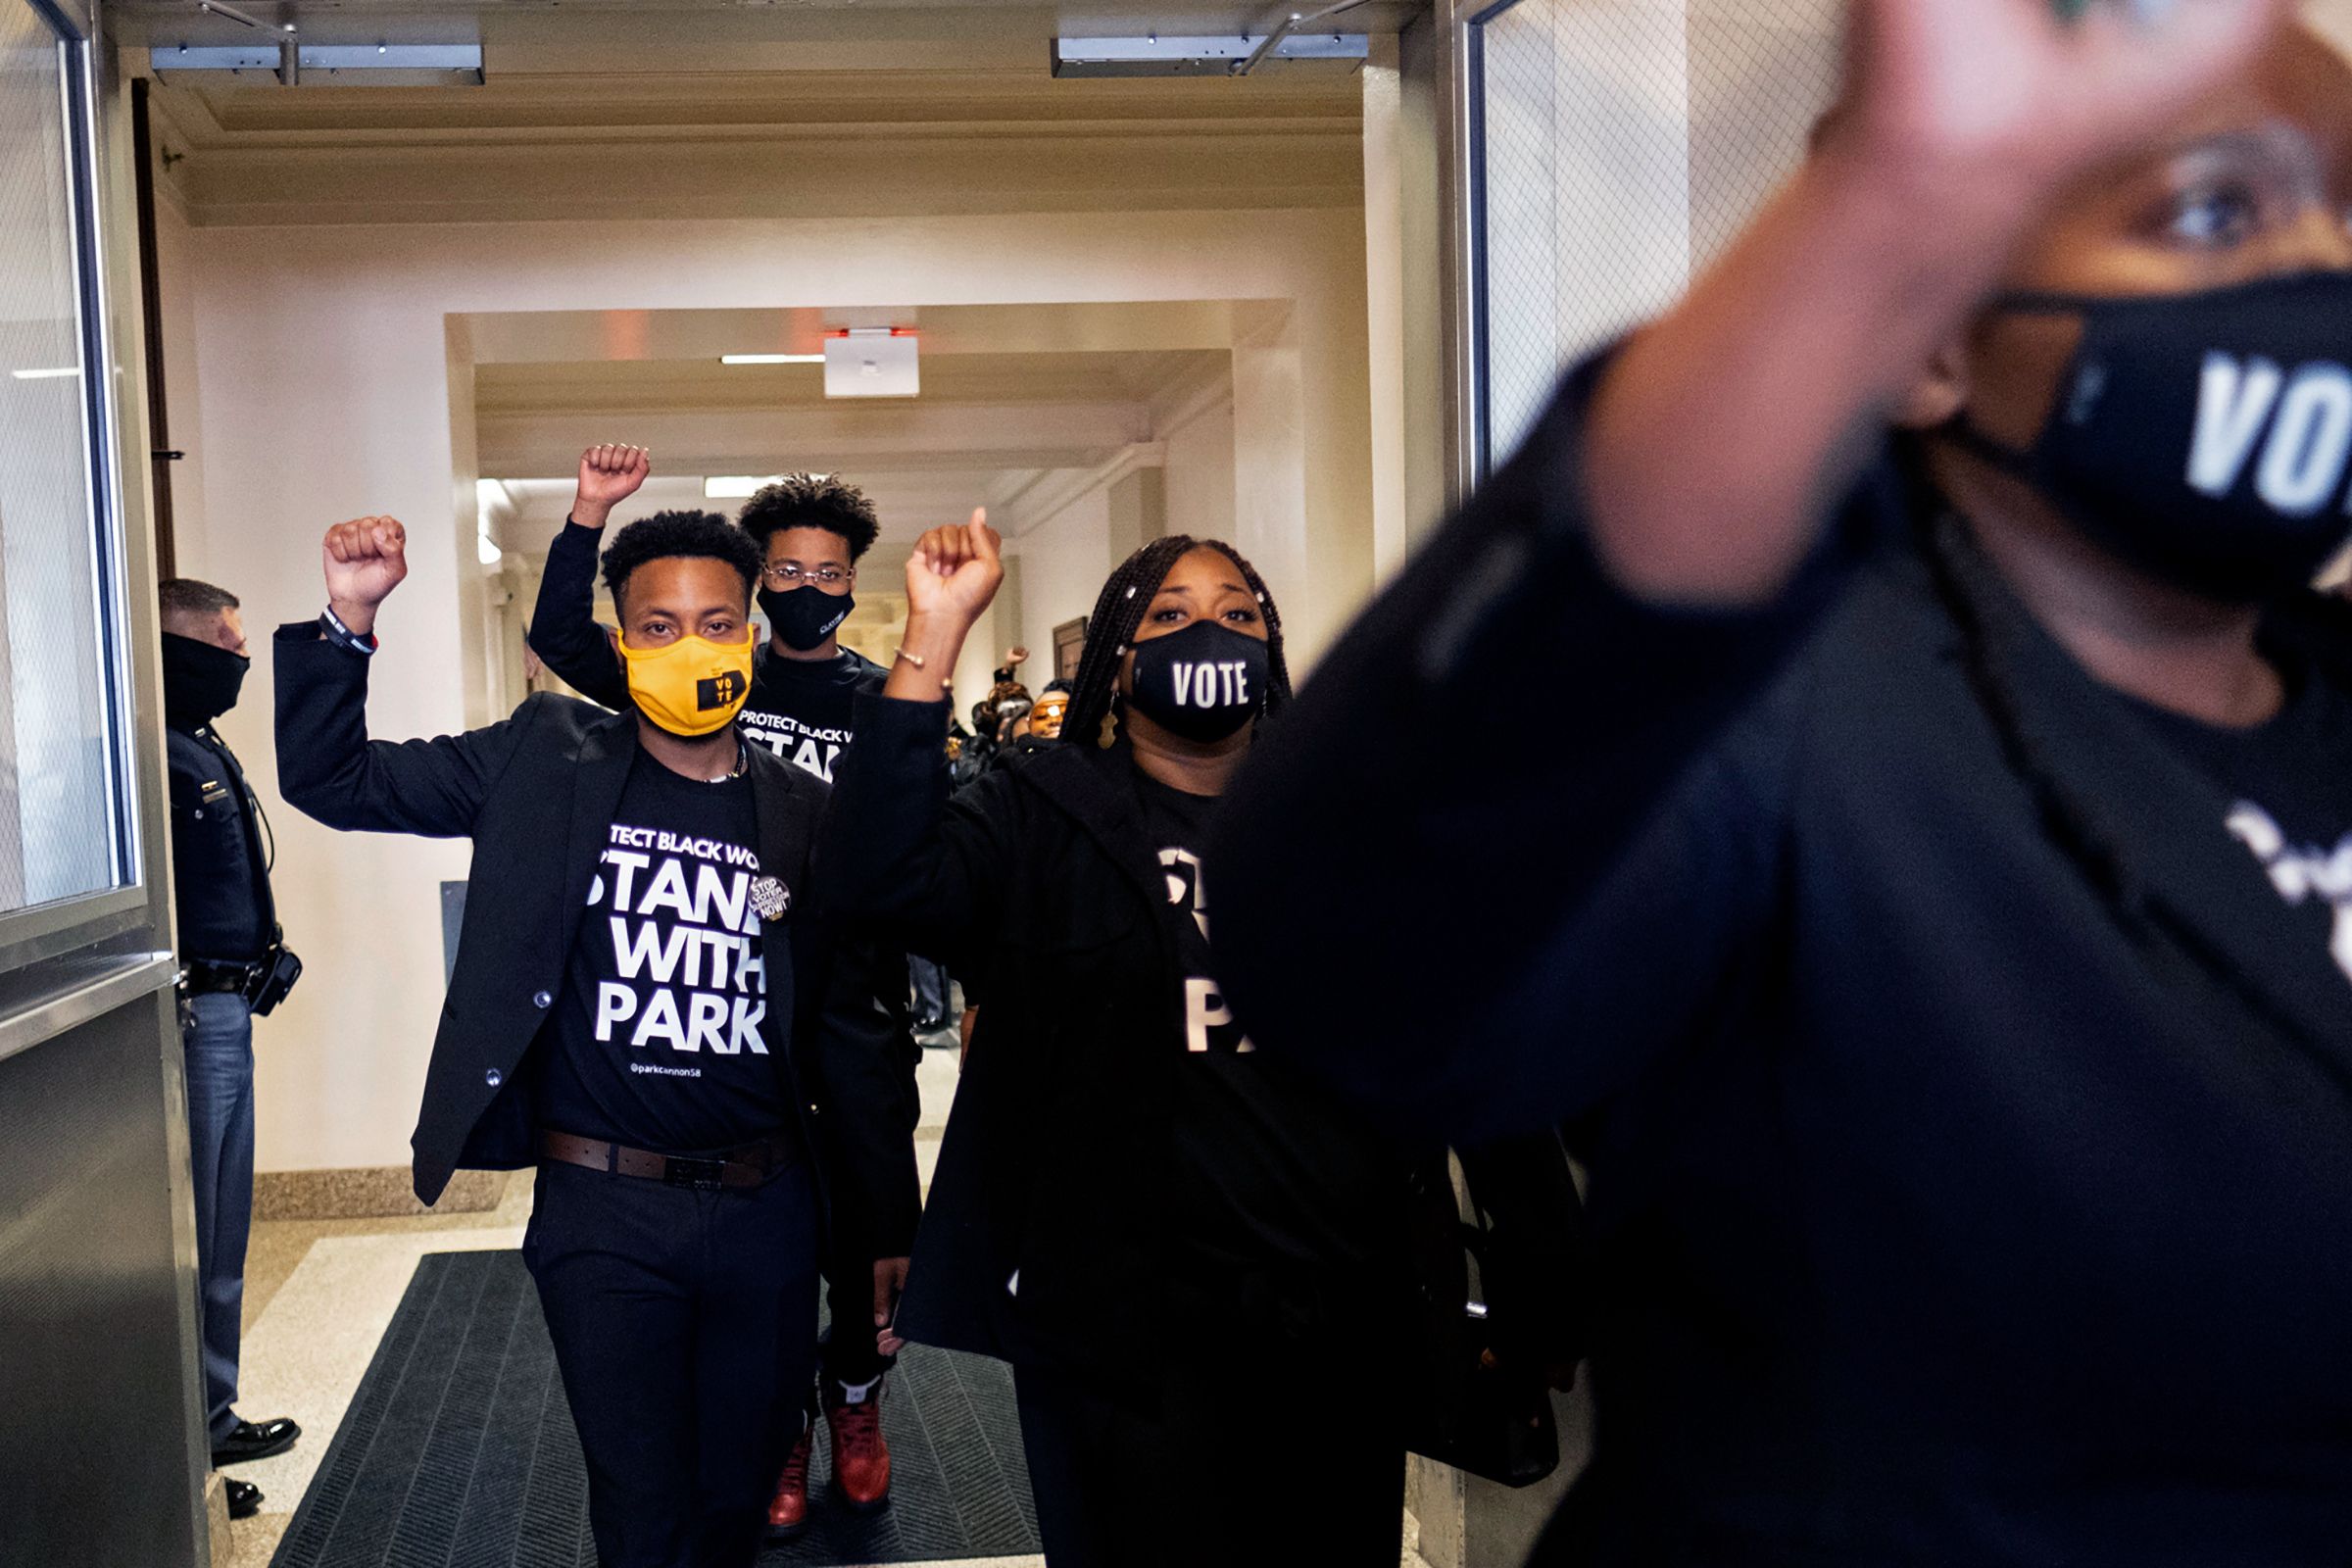 Supporters of Georgia State Rep. Park Cannon leave the State Capitol in Atlanta on Monday morning, March 29, 2021 after escorting her into the building.